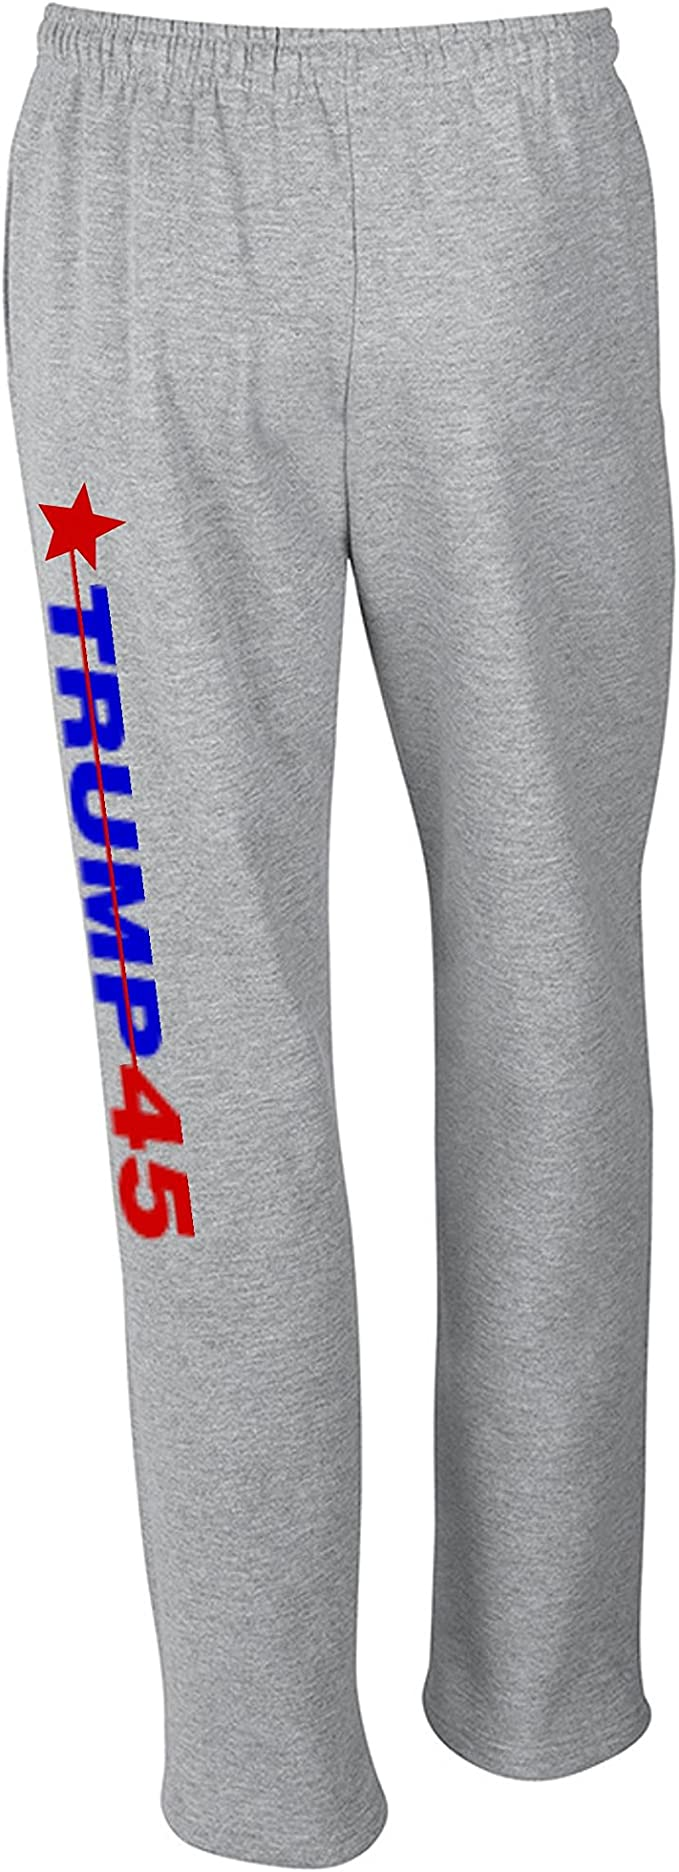 Mens Donald Trump Sweatpants '20 Presidential Election Navy sizes S XL Sweats | eBay